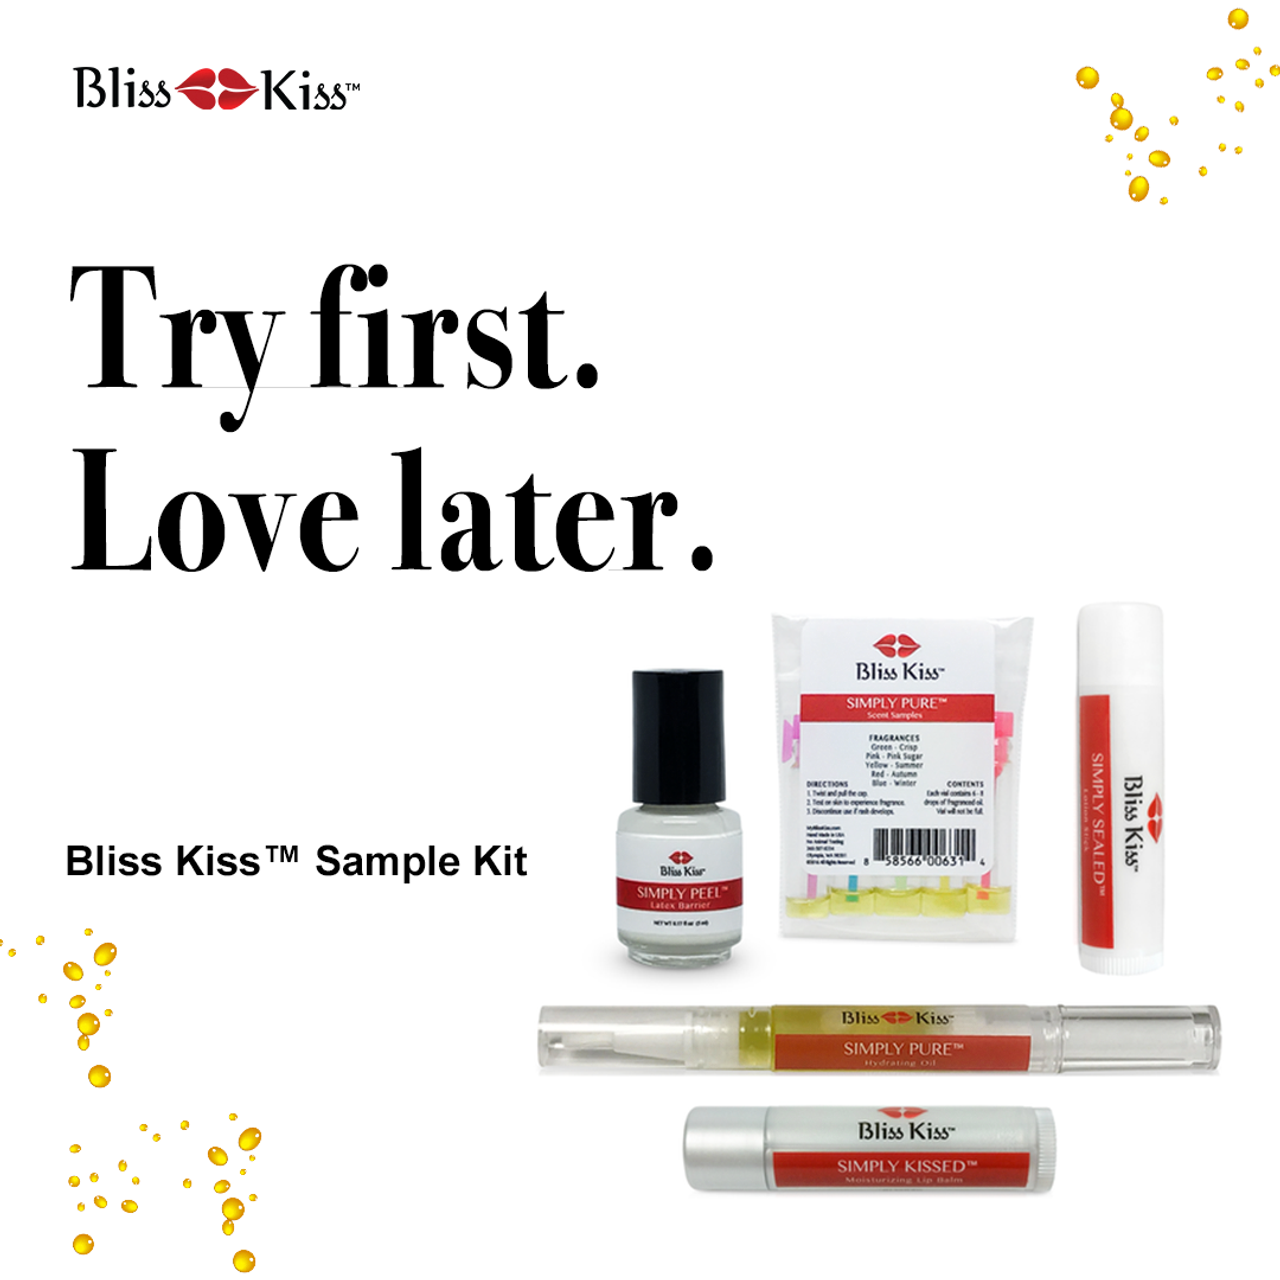 Bliss Kiss™ Sample Kit